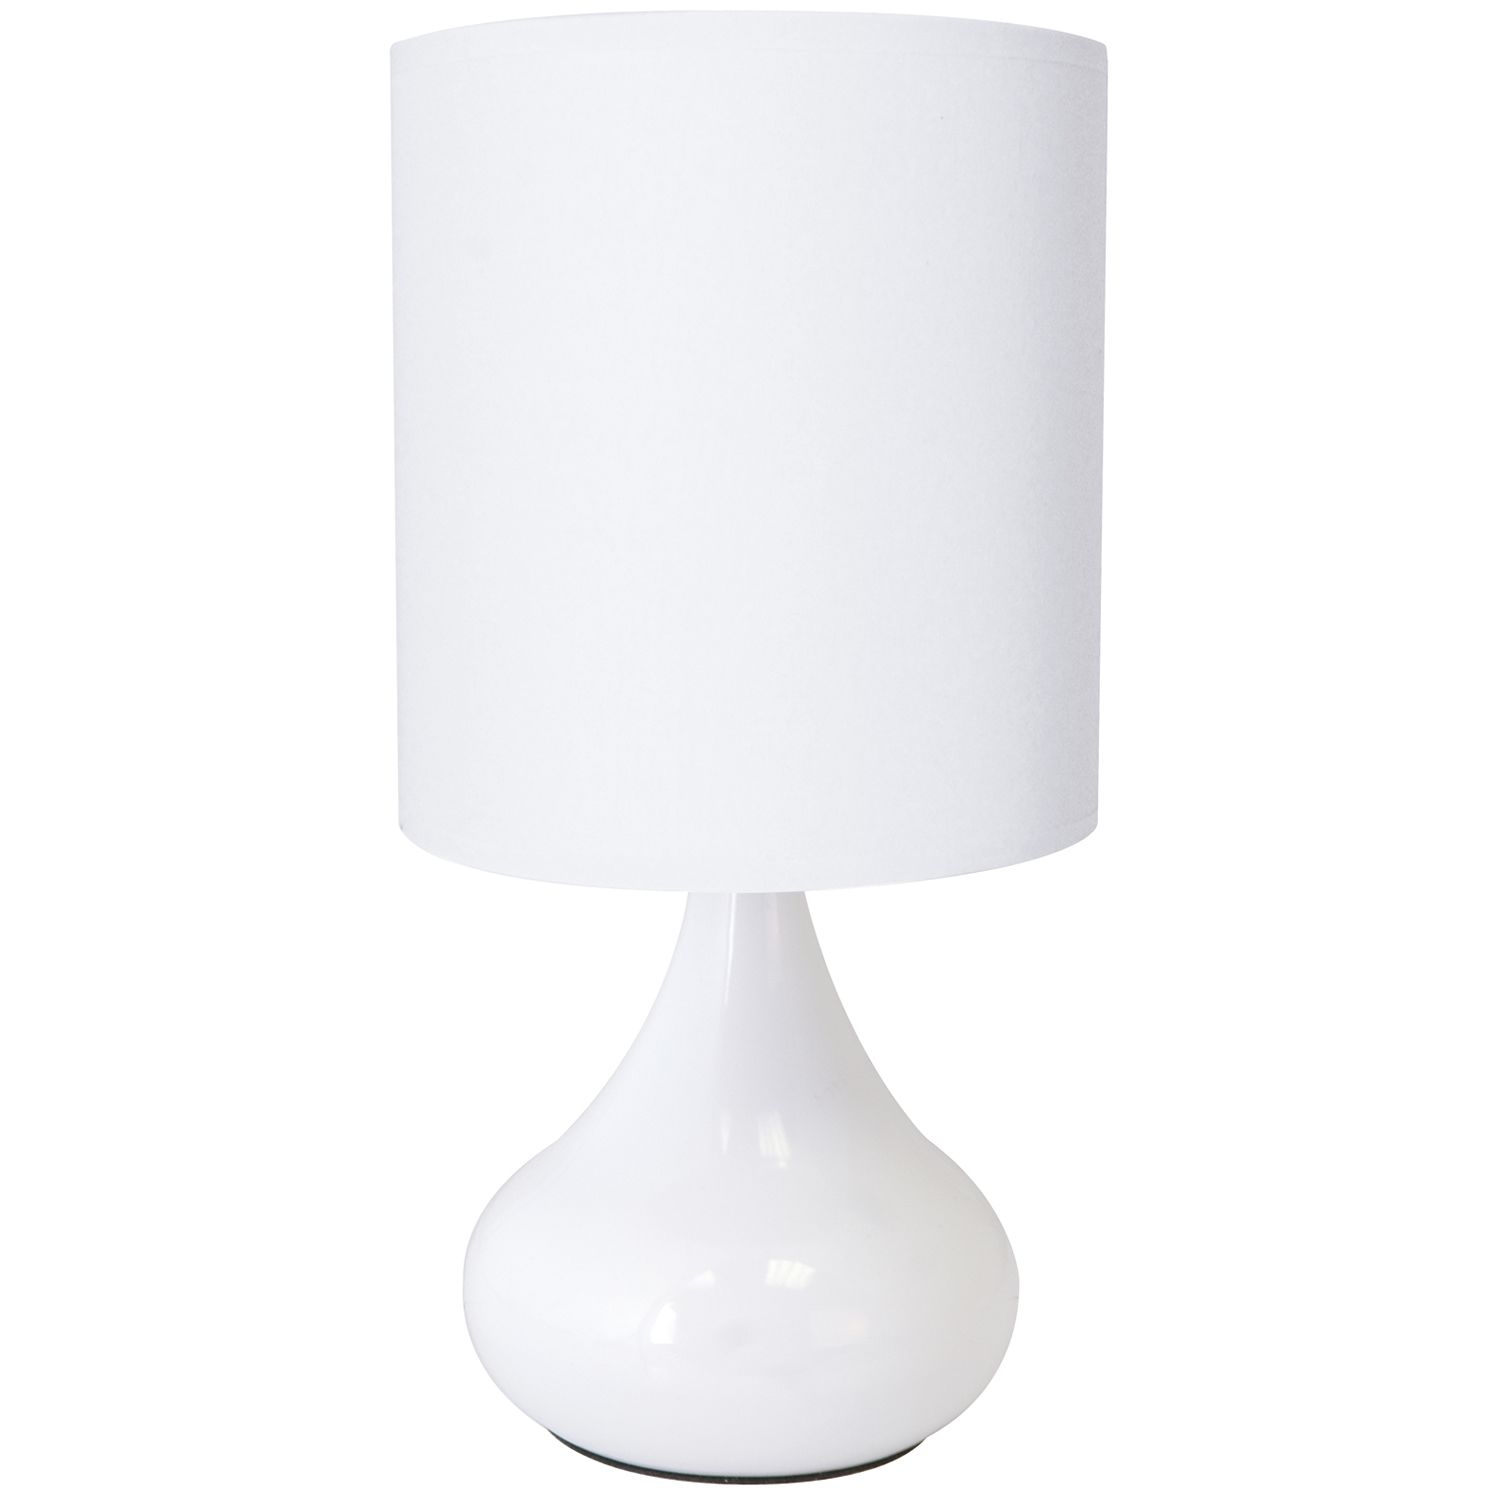 Touch Lamp Next Day Delivery Lloytron White Zenith